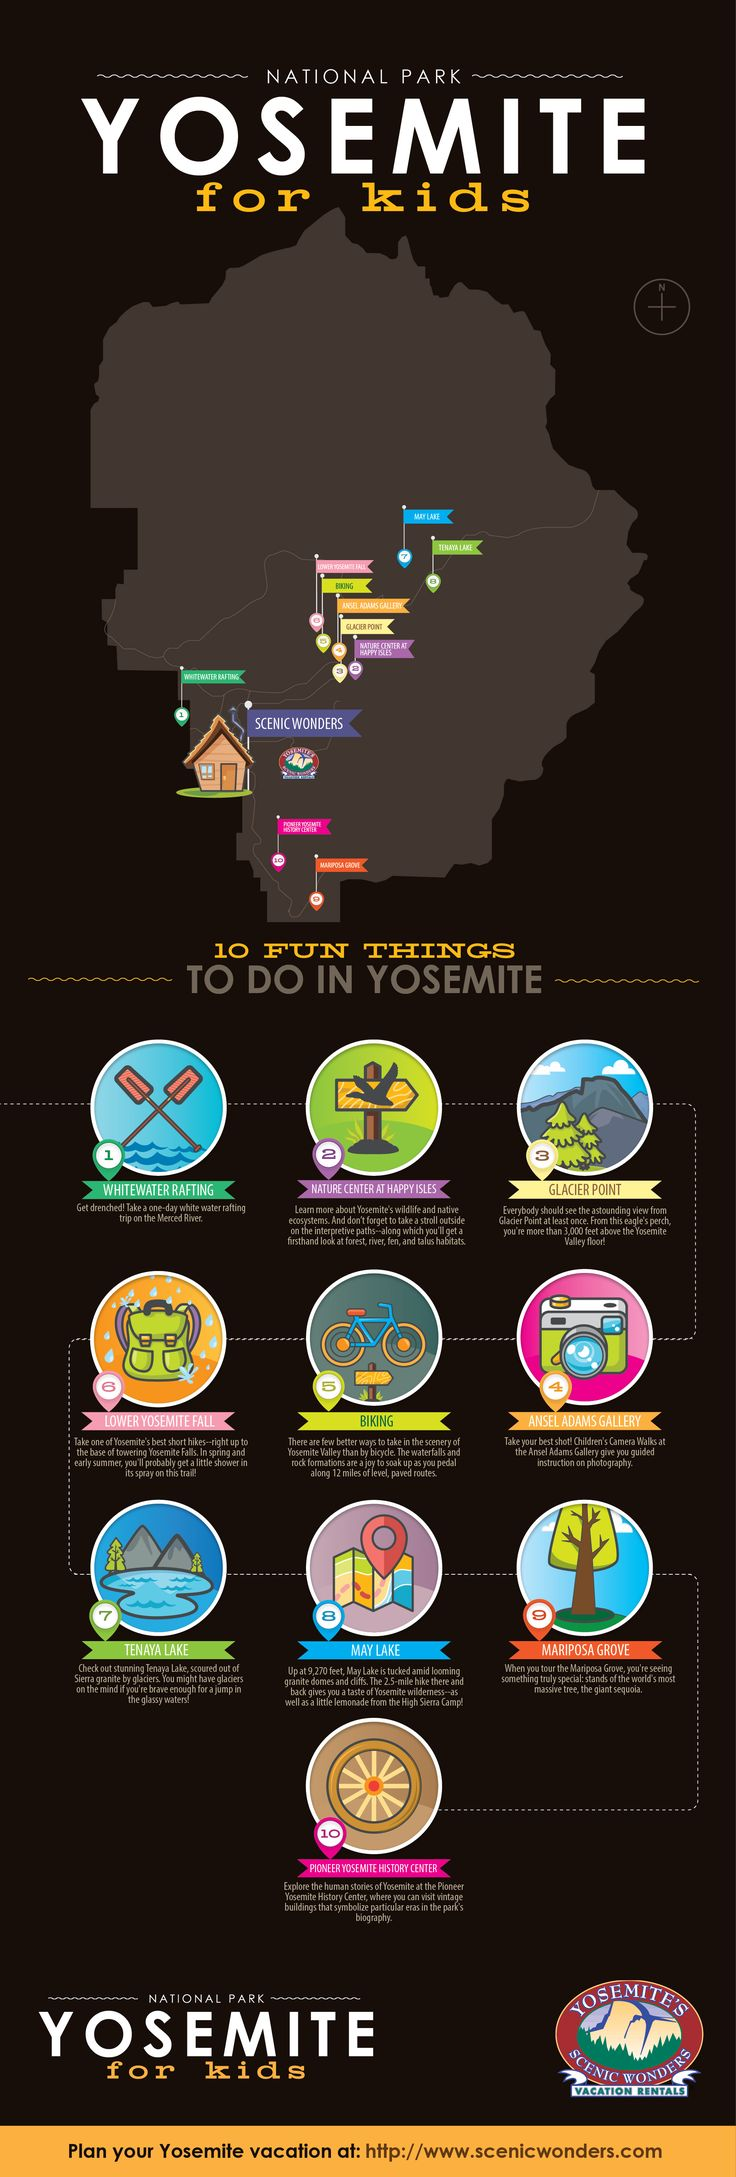 Check out this #Yosemite #Infographic: It's a full education on Yosemite fun for kids in the blink of an eye! http://www.scenicwonders.com/yosemite-for-kids-infographic/